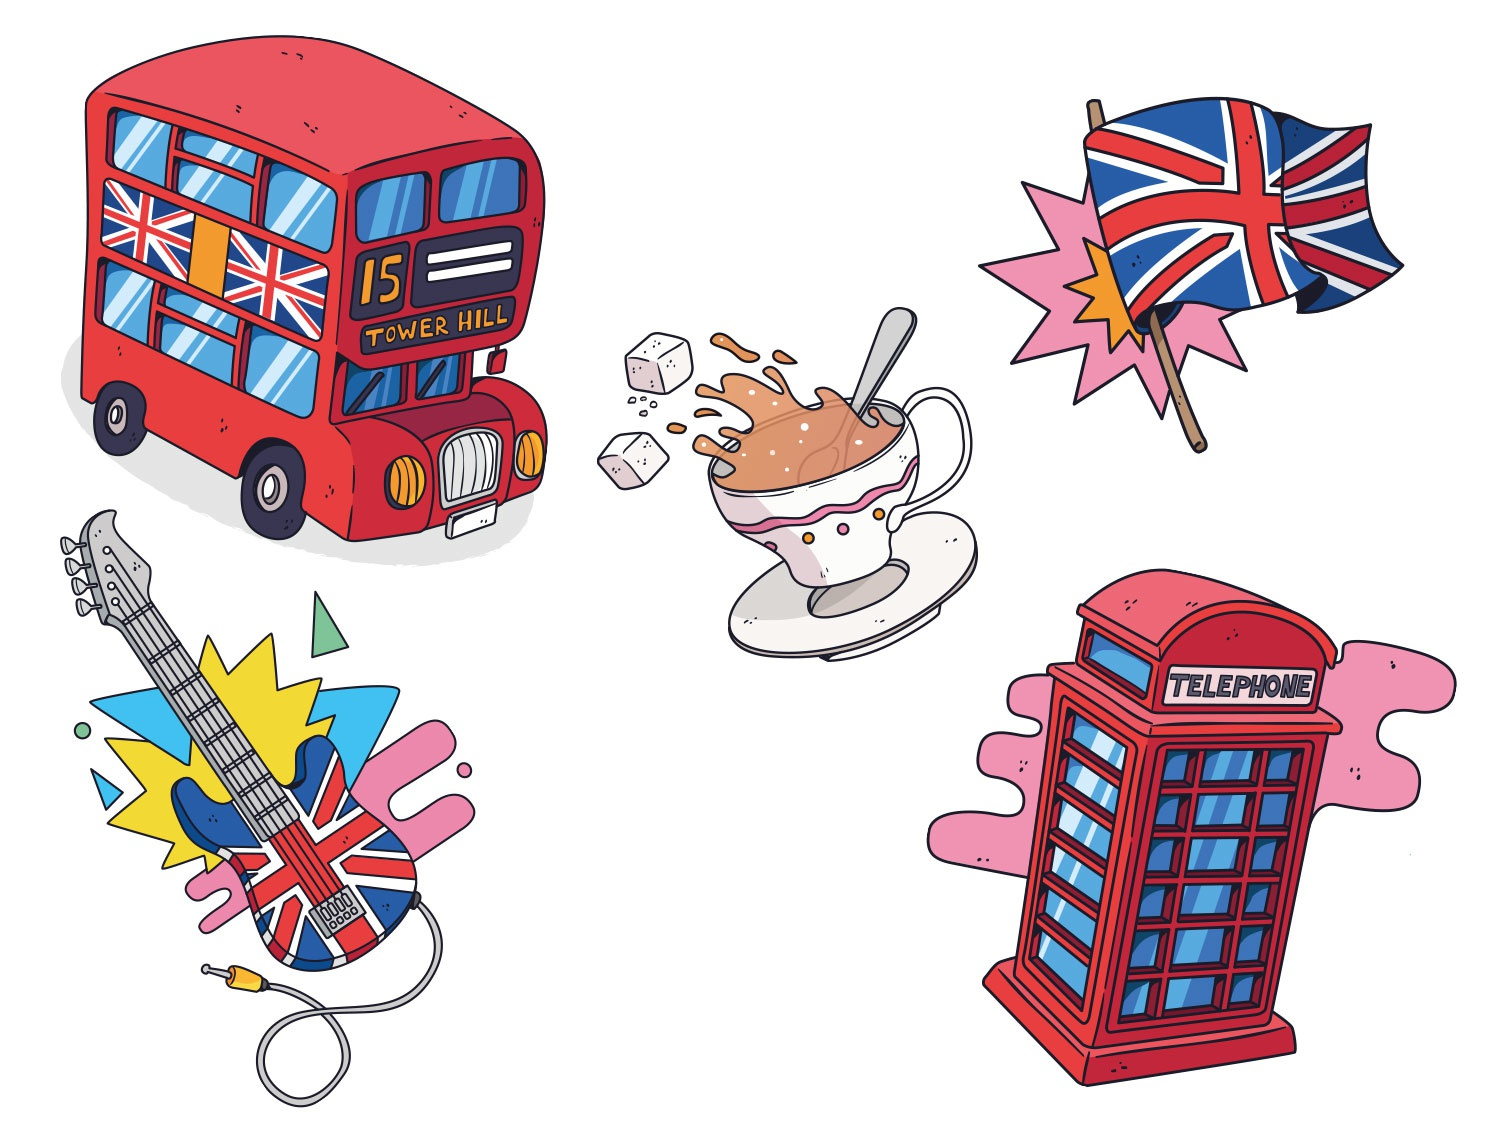 Learning english quiz london editorial freelance illustrator rough handdrawn drawing england illustration keuj